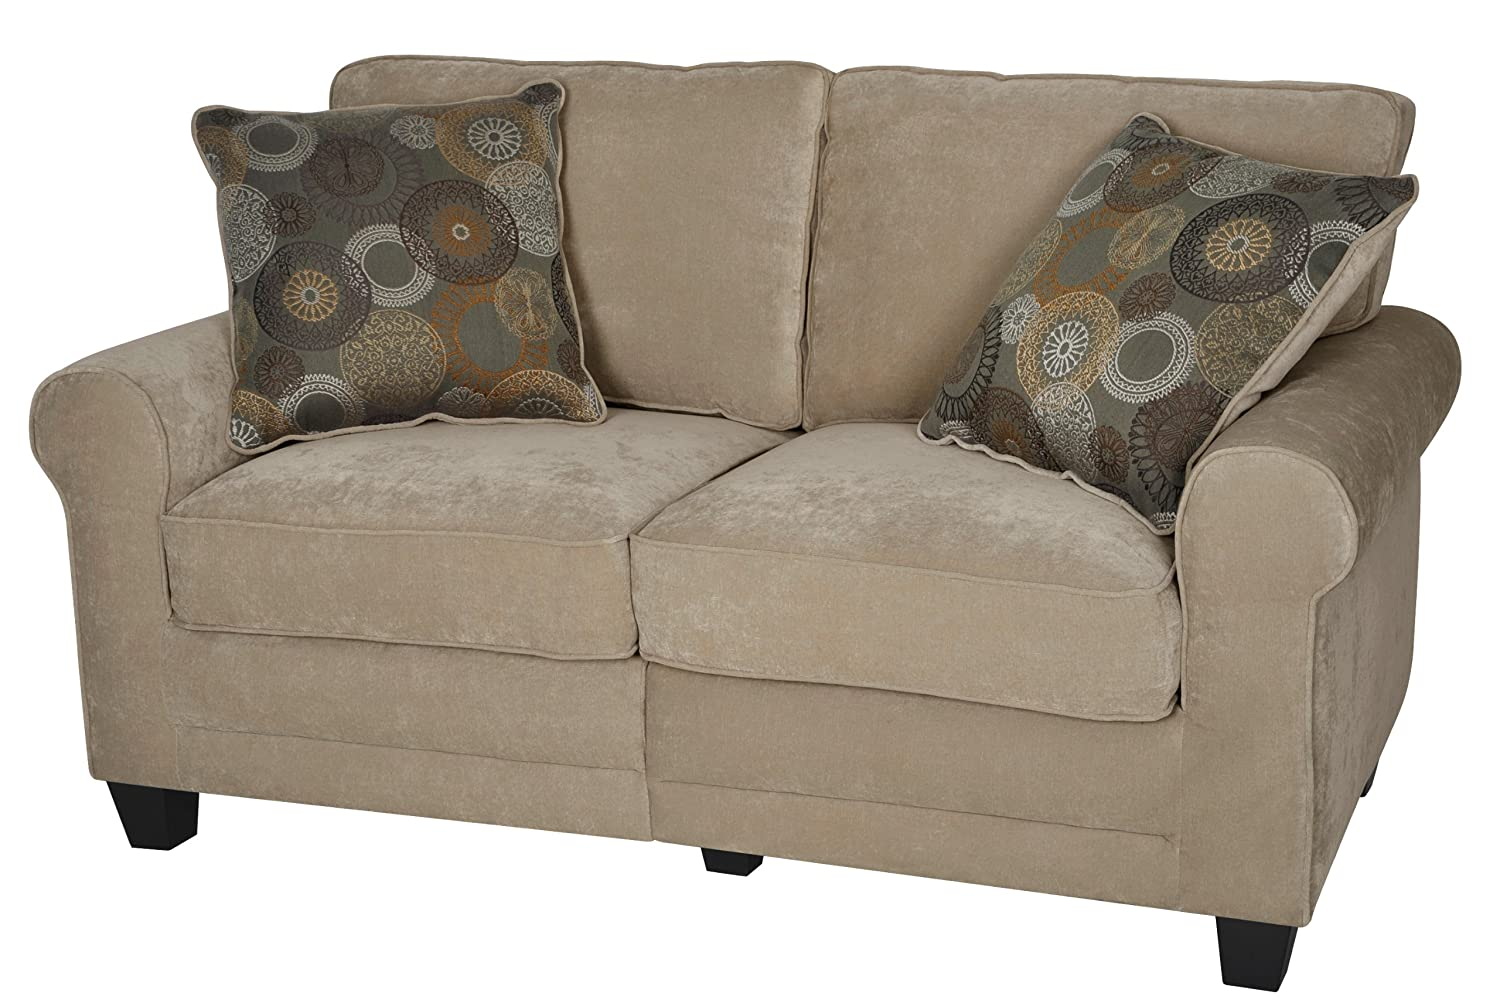 Serta® RTA Copenhagen Collection 61 Loveseat in Marzipan - CR43531PB